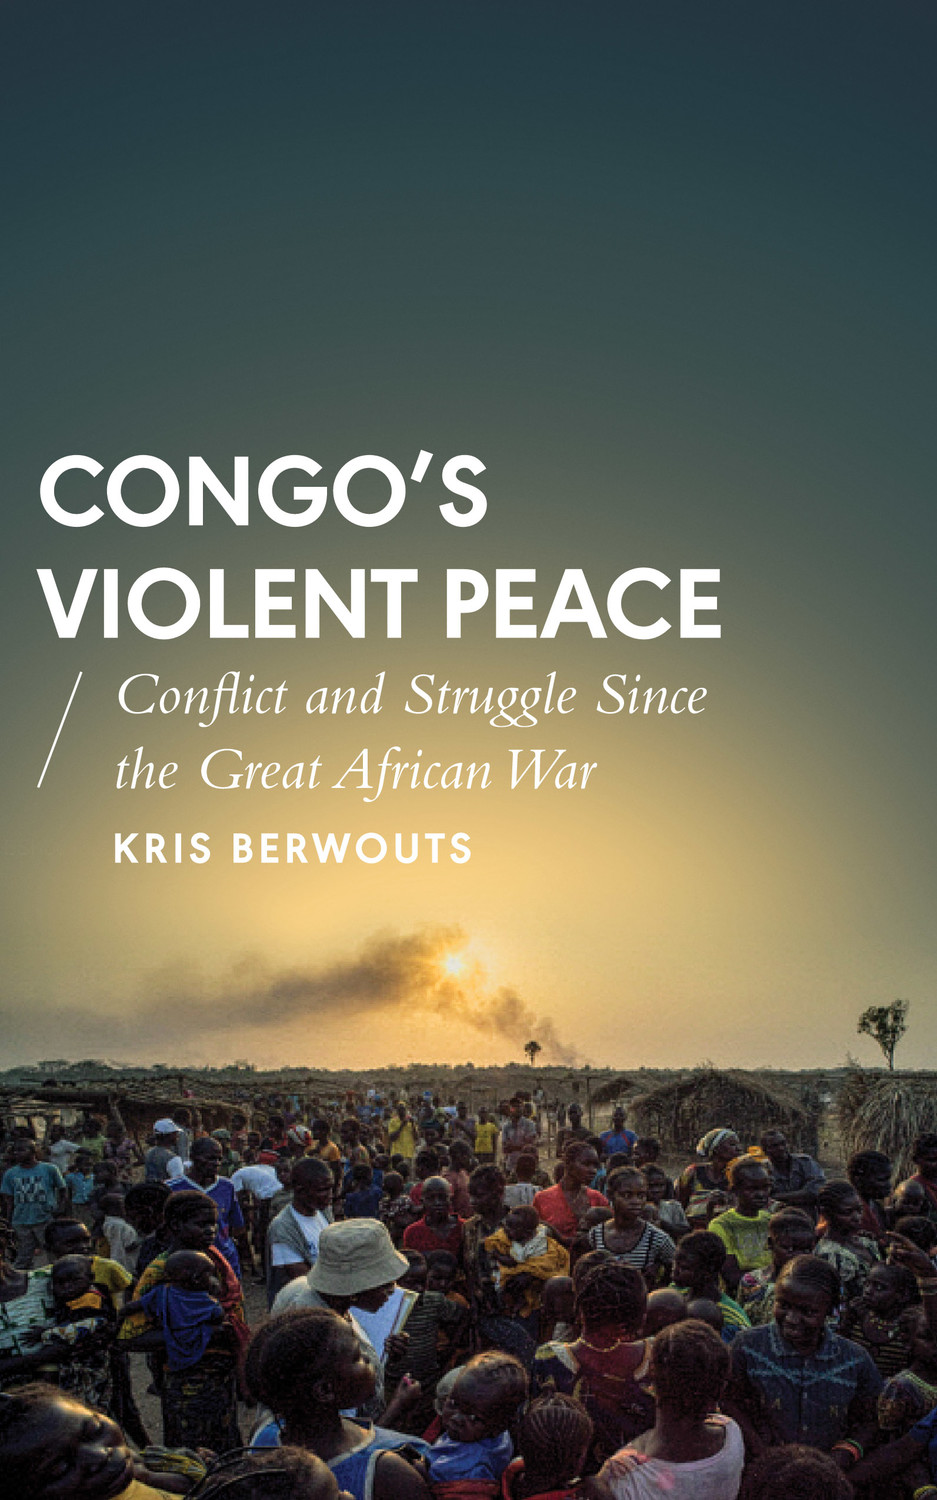 Copy of Saturday 10/21, 3PM - Book Discussion w/ Author Kris Berwouts